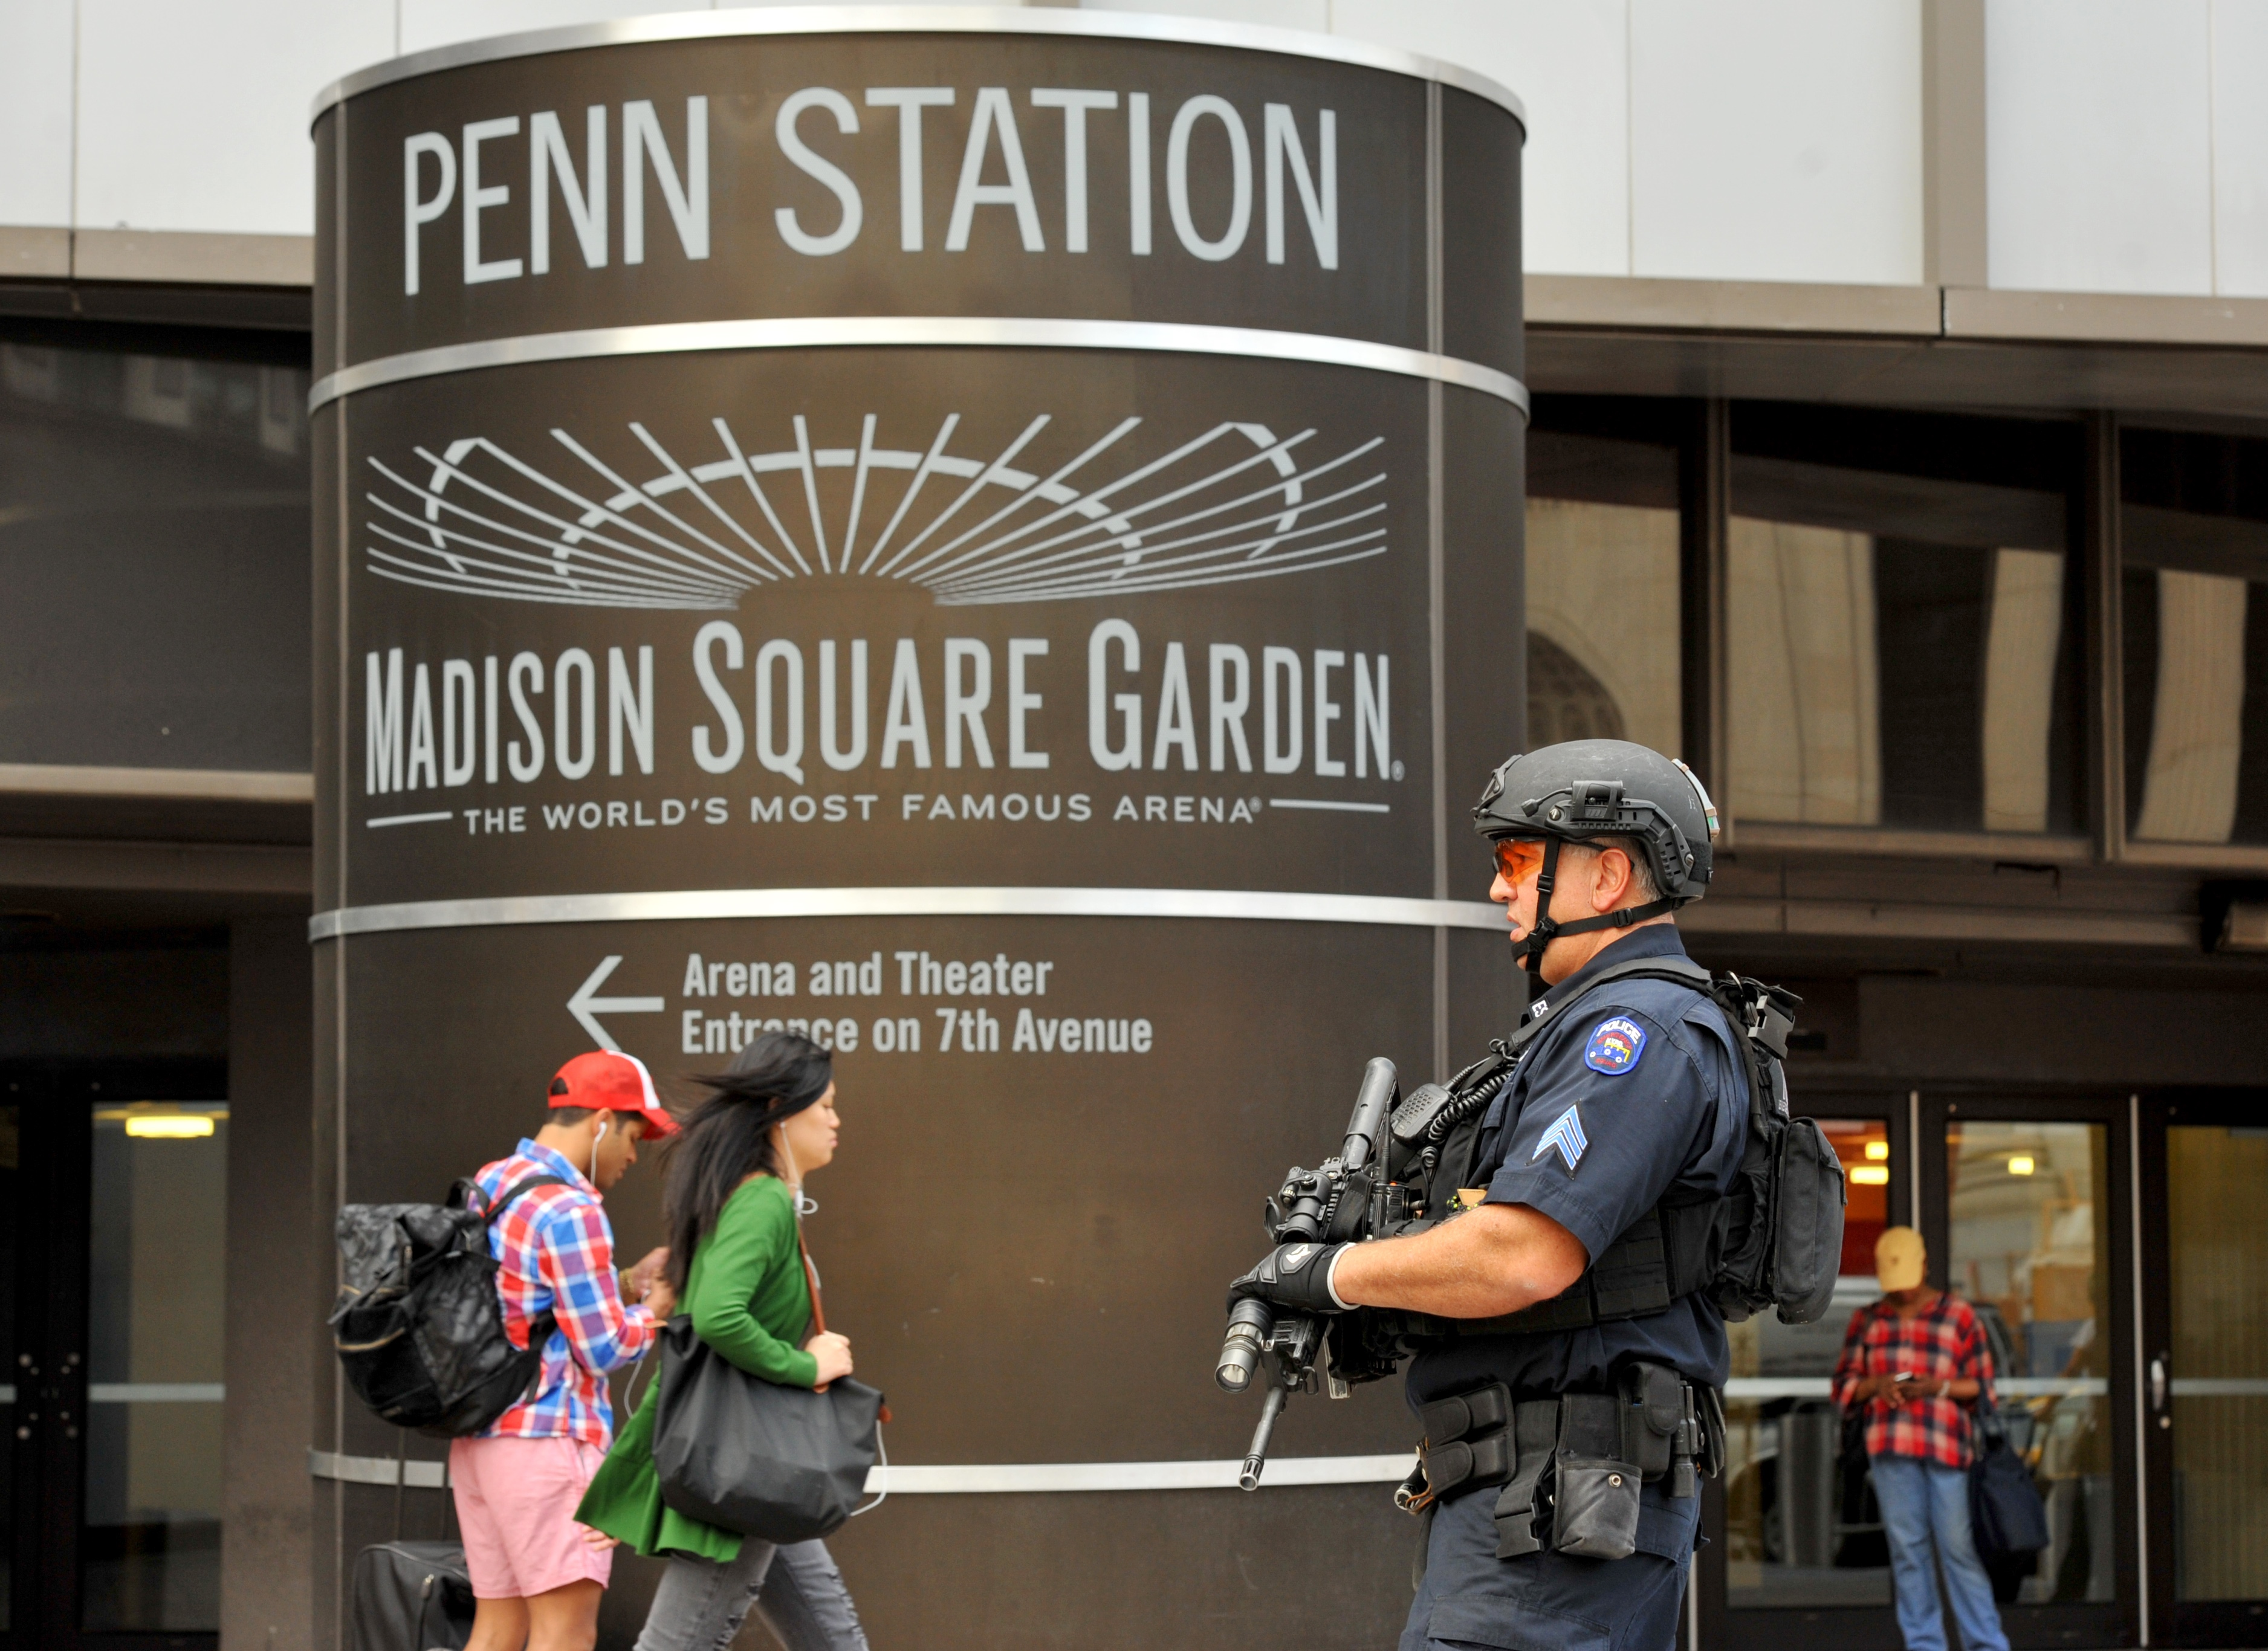 New York Police Department Emergency Service Units patrol outside Penn Station before the start of theNew York Police Department 2016 graduation class ceremony at Madison Square Garden on July, 1, 2016.